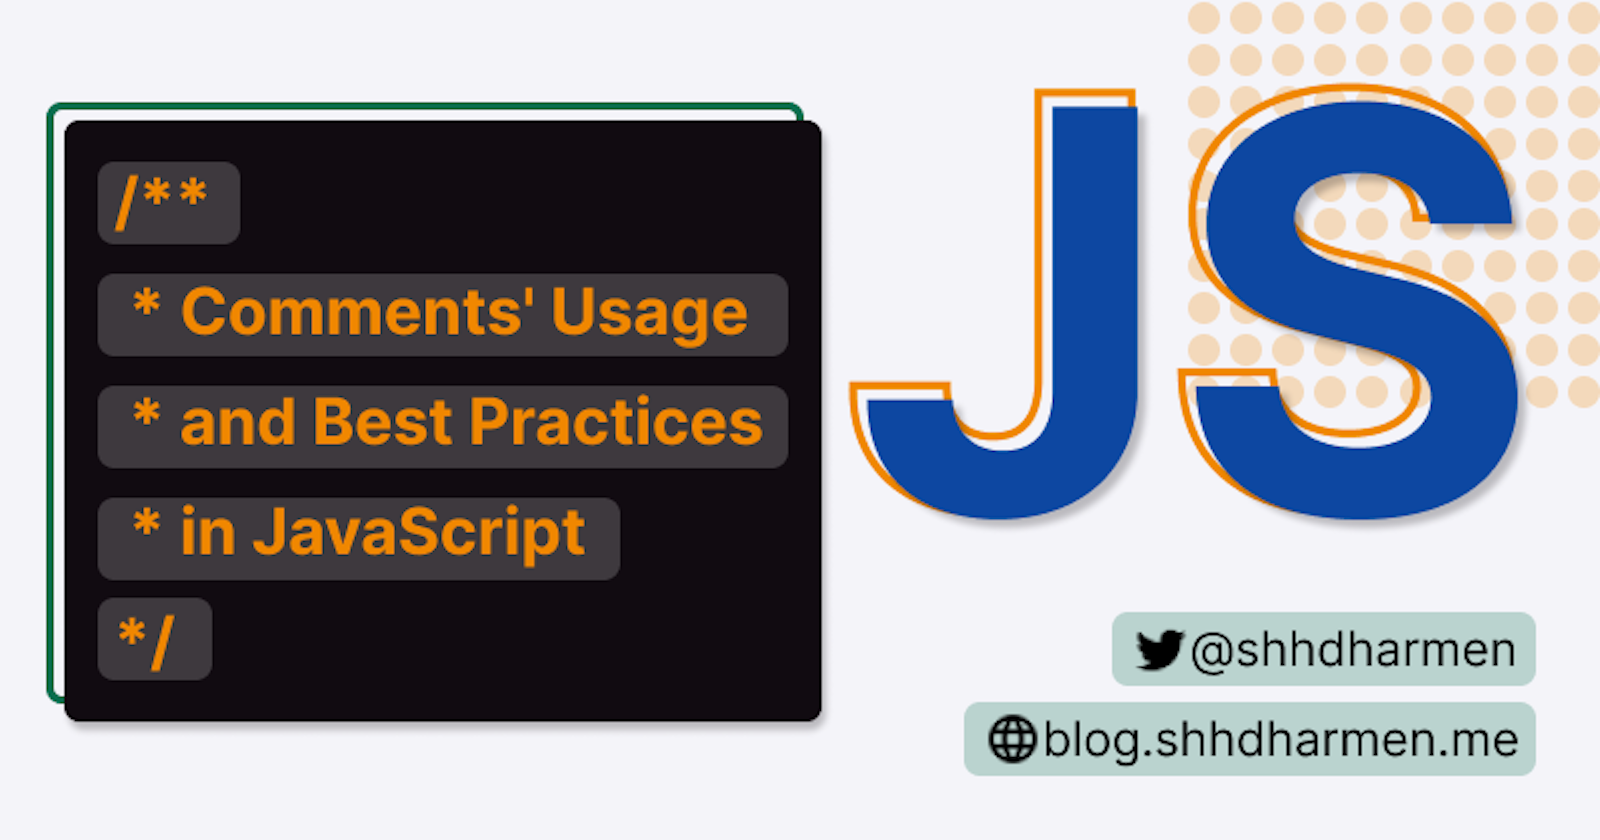 Comments' Usage and Best Practices in JavaScript